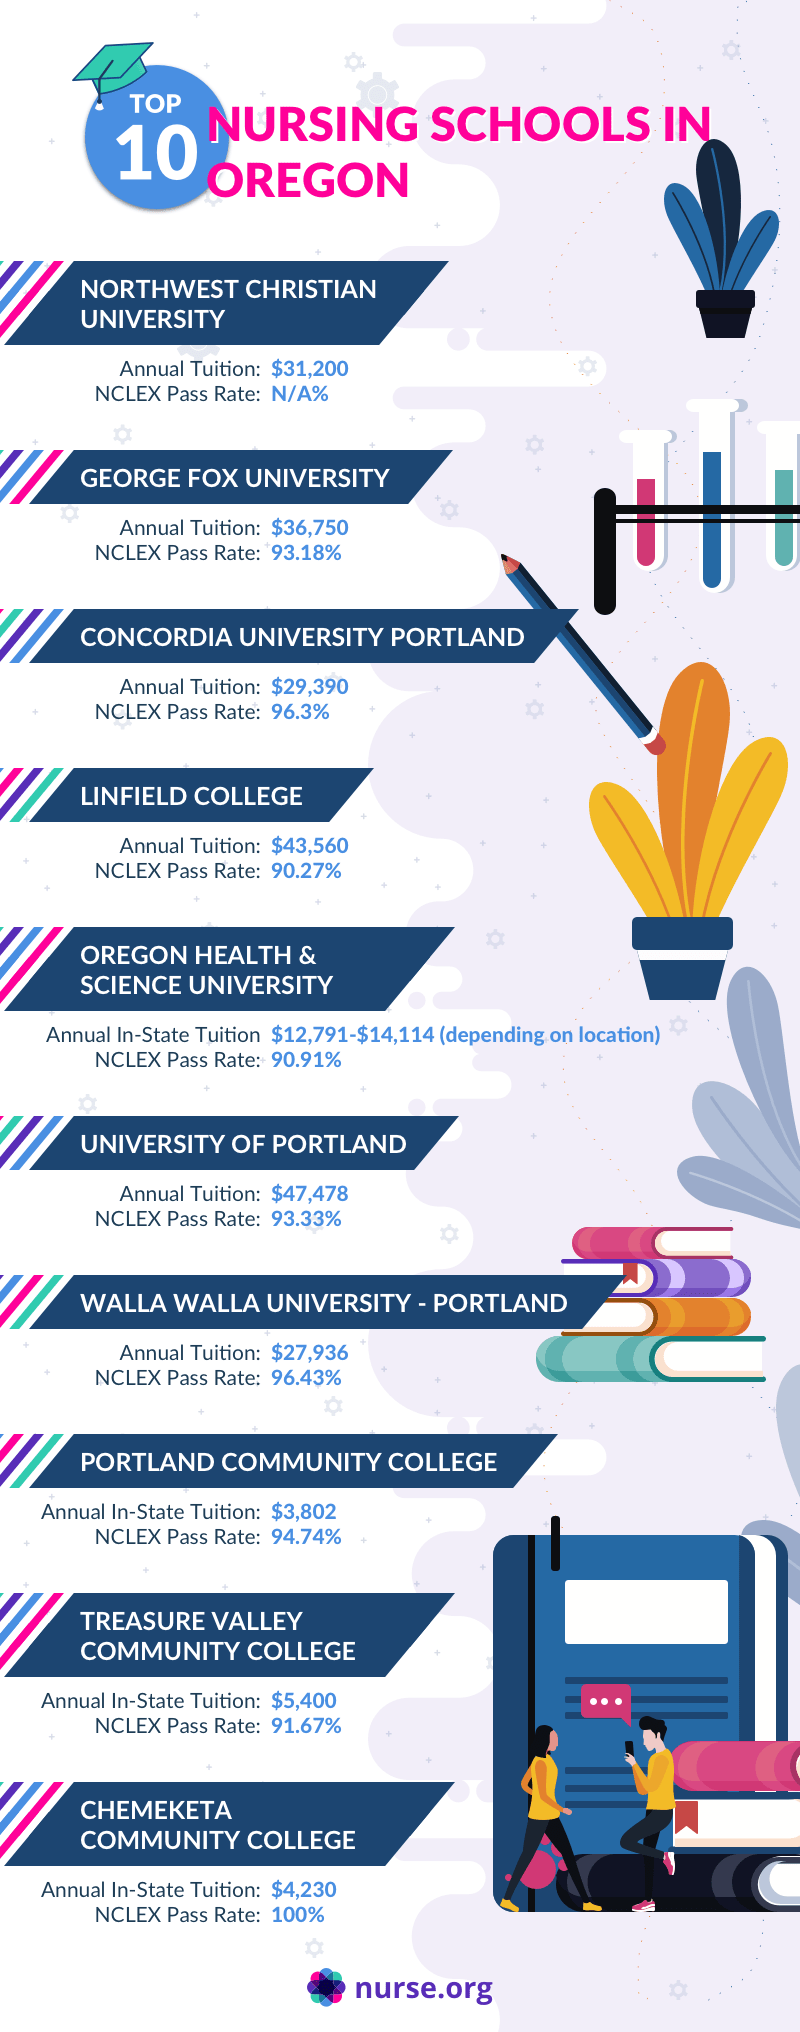 Infographic comparing the top nursing schools in Oregon